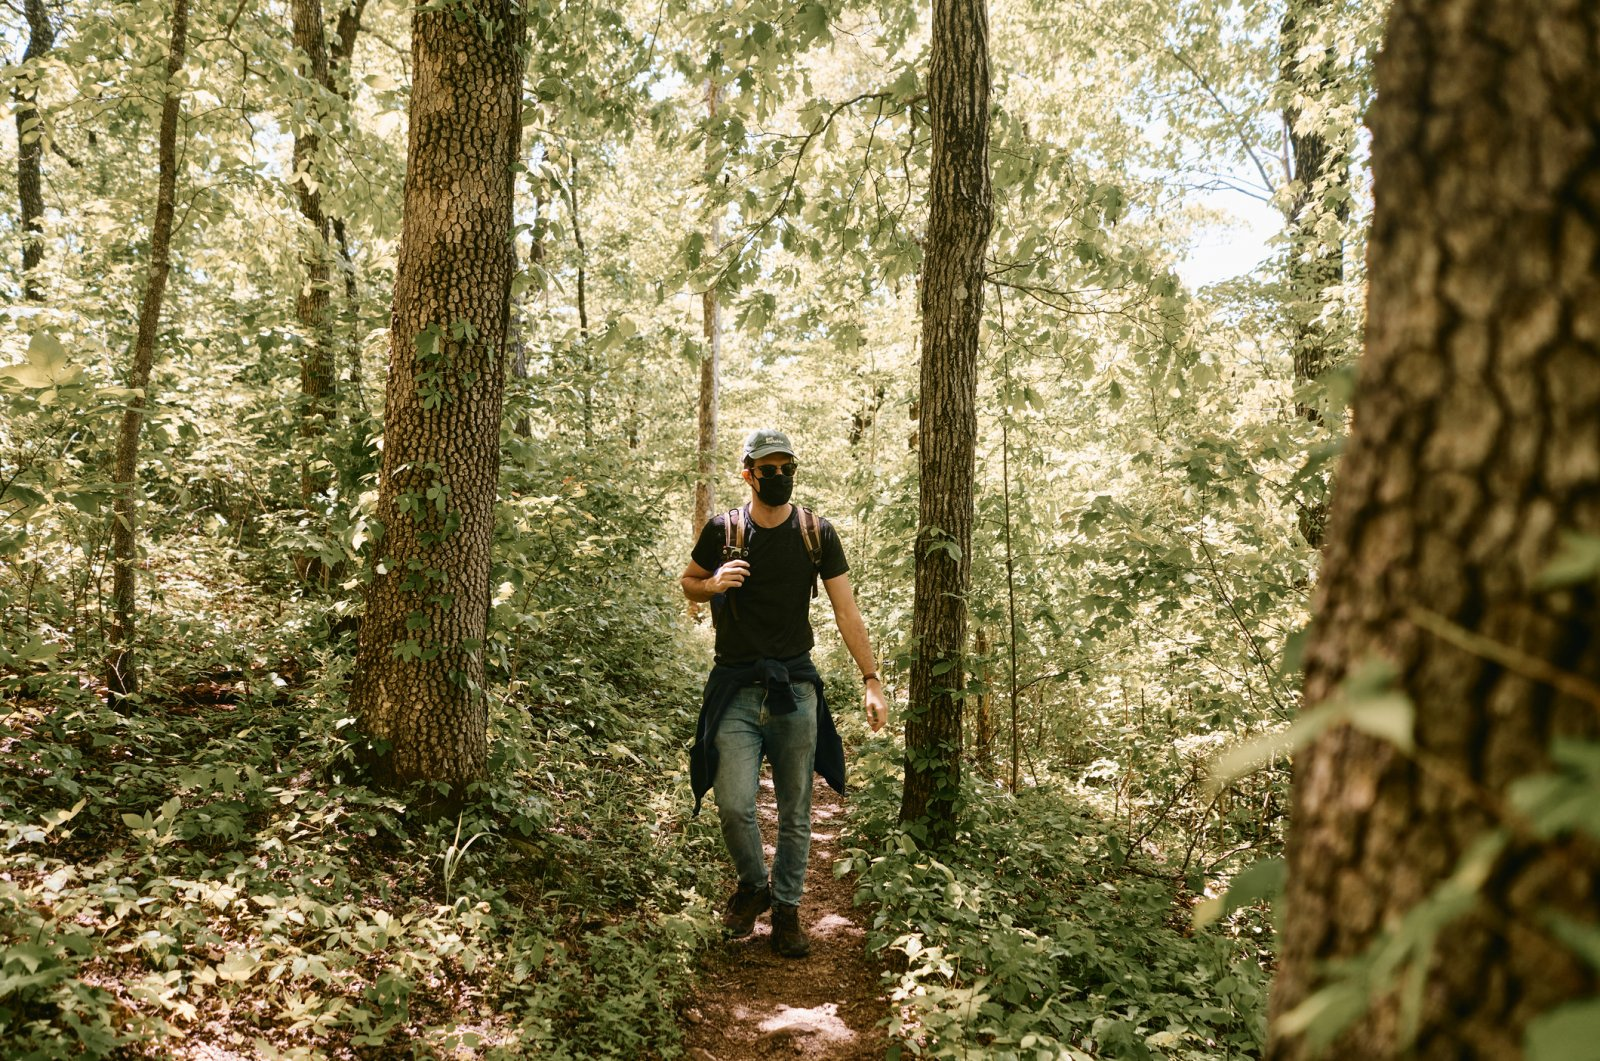 Hiking during a pandemic requires more care and attention to details. (iStock Photo)